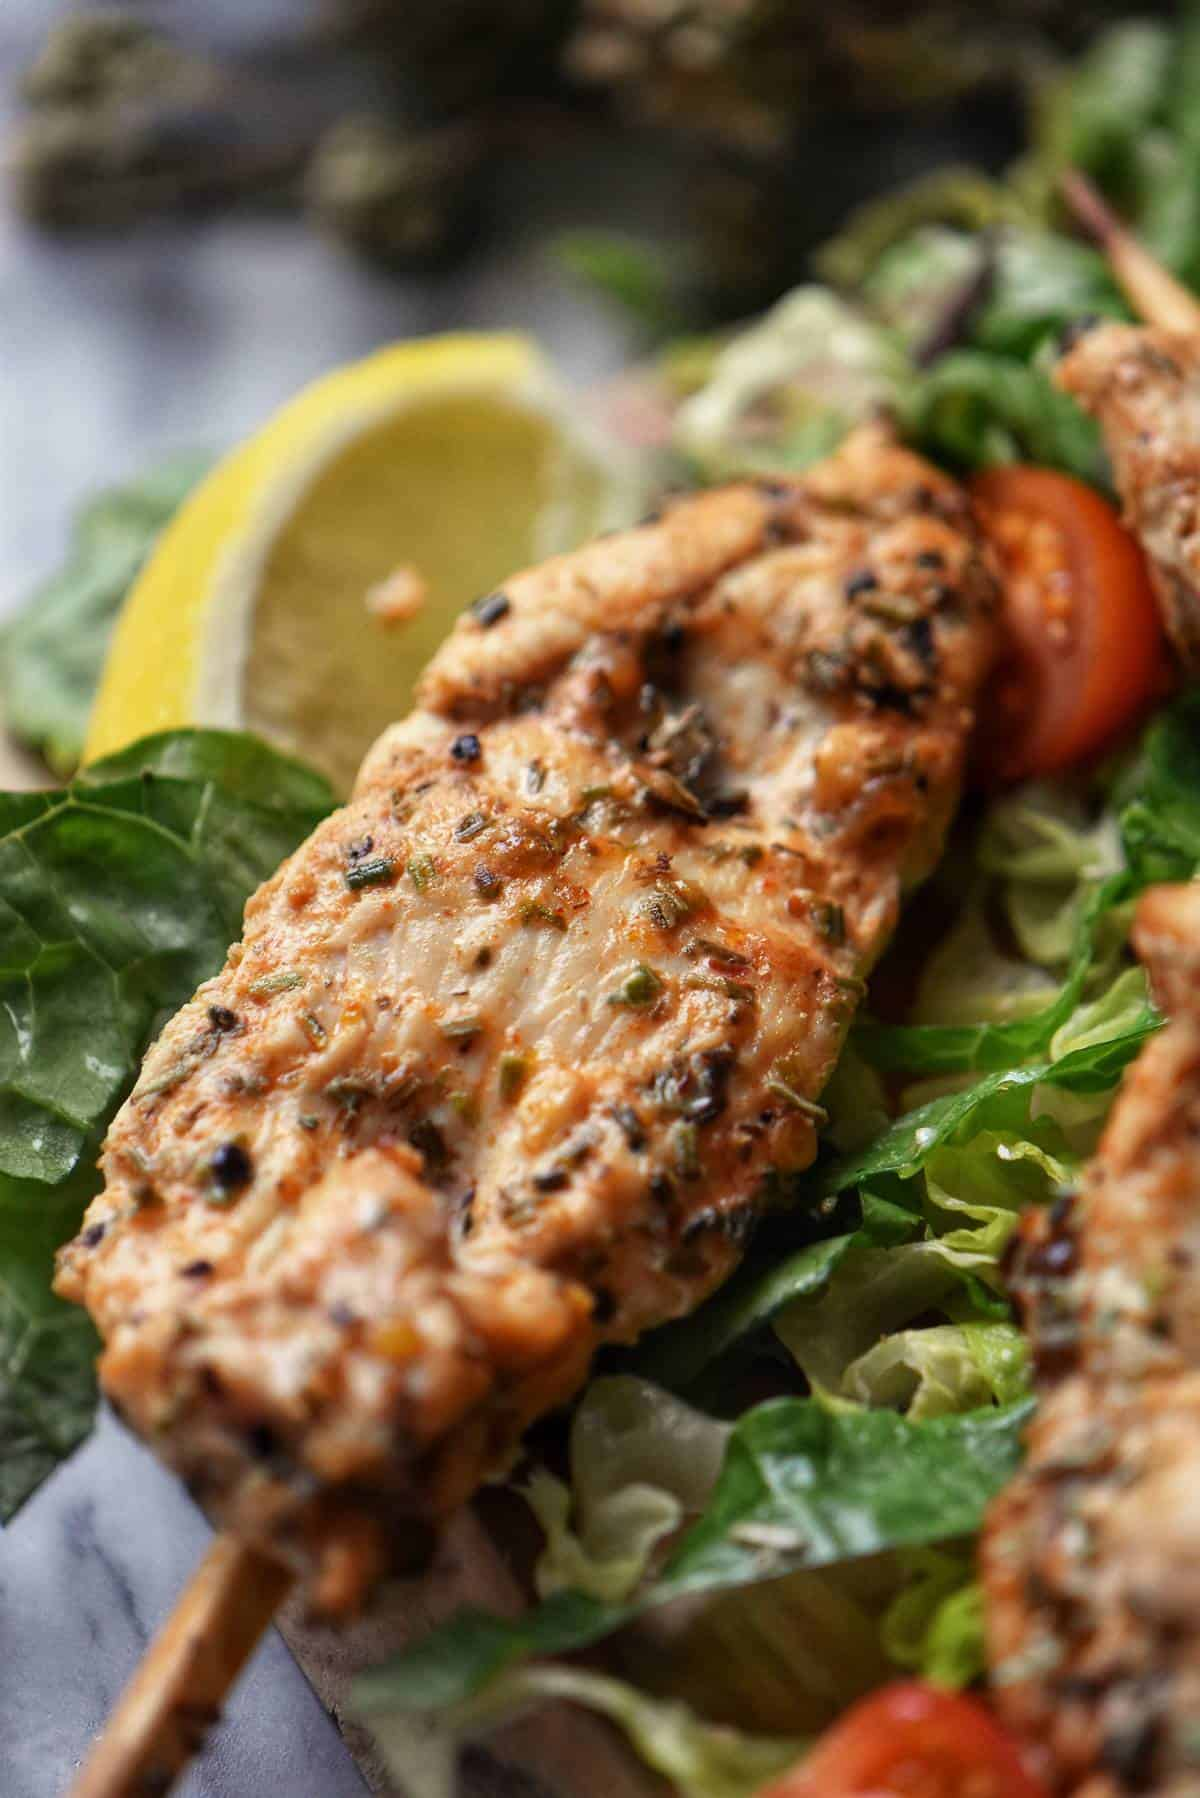 A single chicken skewer on a bed of lettuce surrounded by lemon wedges.